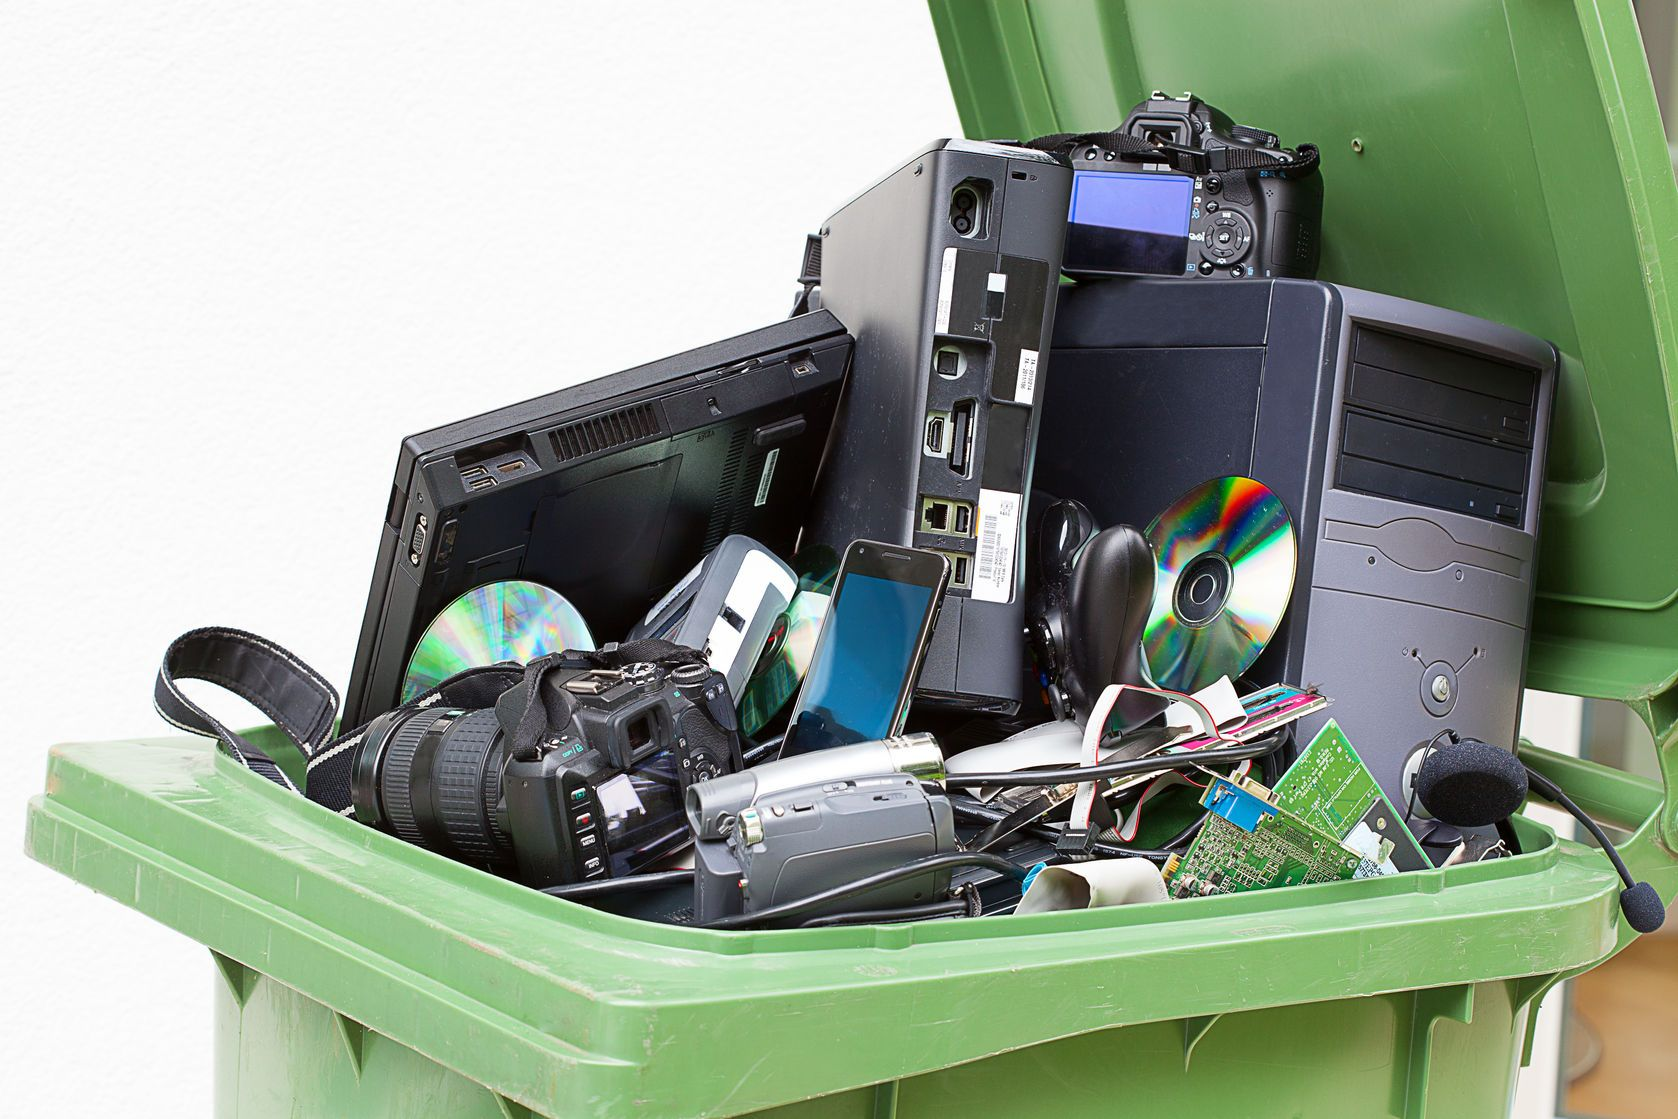 Computer recycling helps keep toxic materials out of our environment.